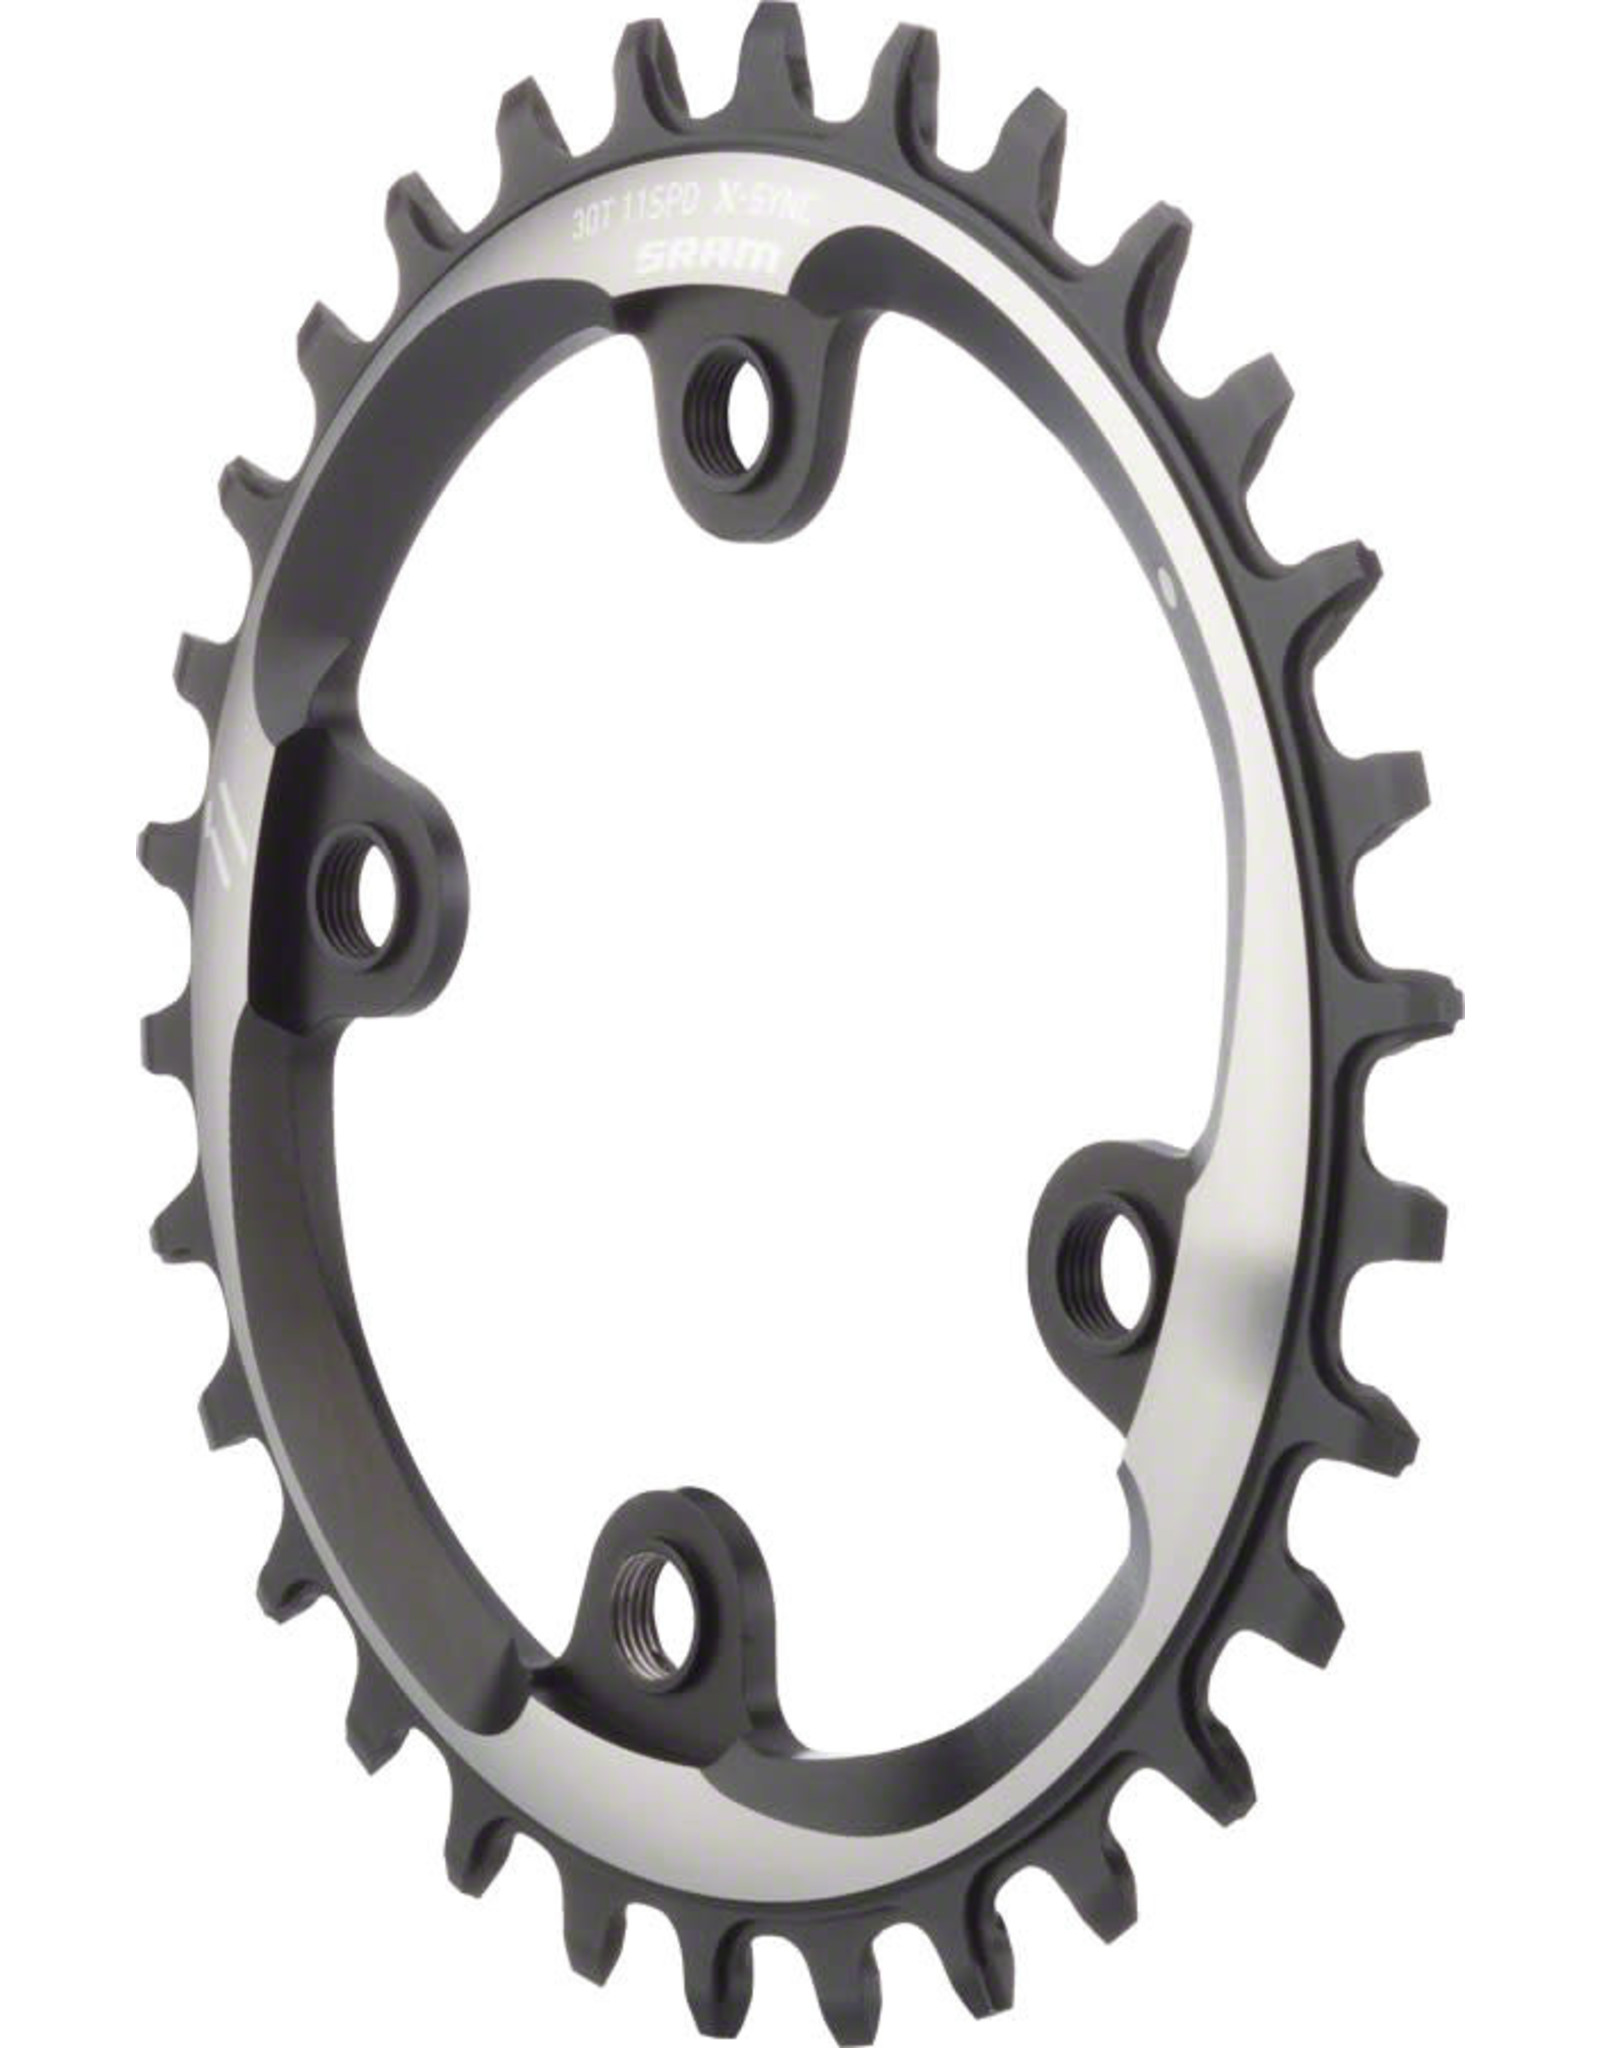 SRAM SRAM XX1 XSync 30 Tooth 76mm BCD Chainring 10sp/11sp